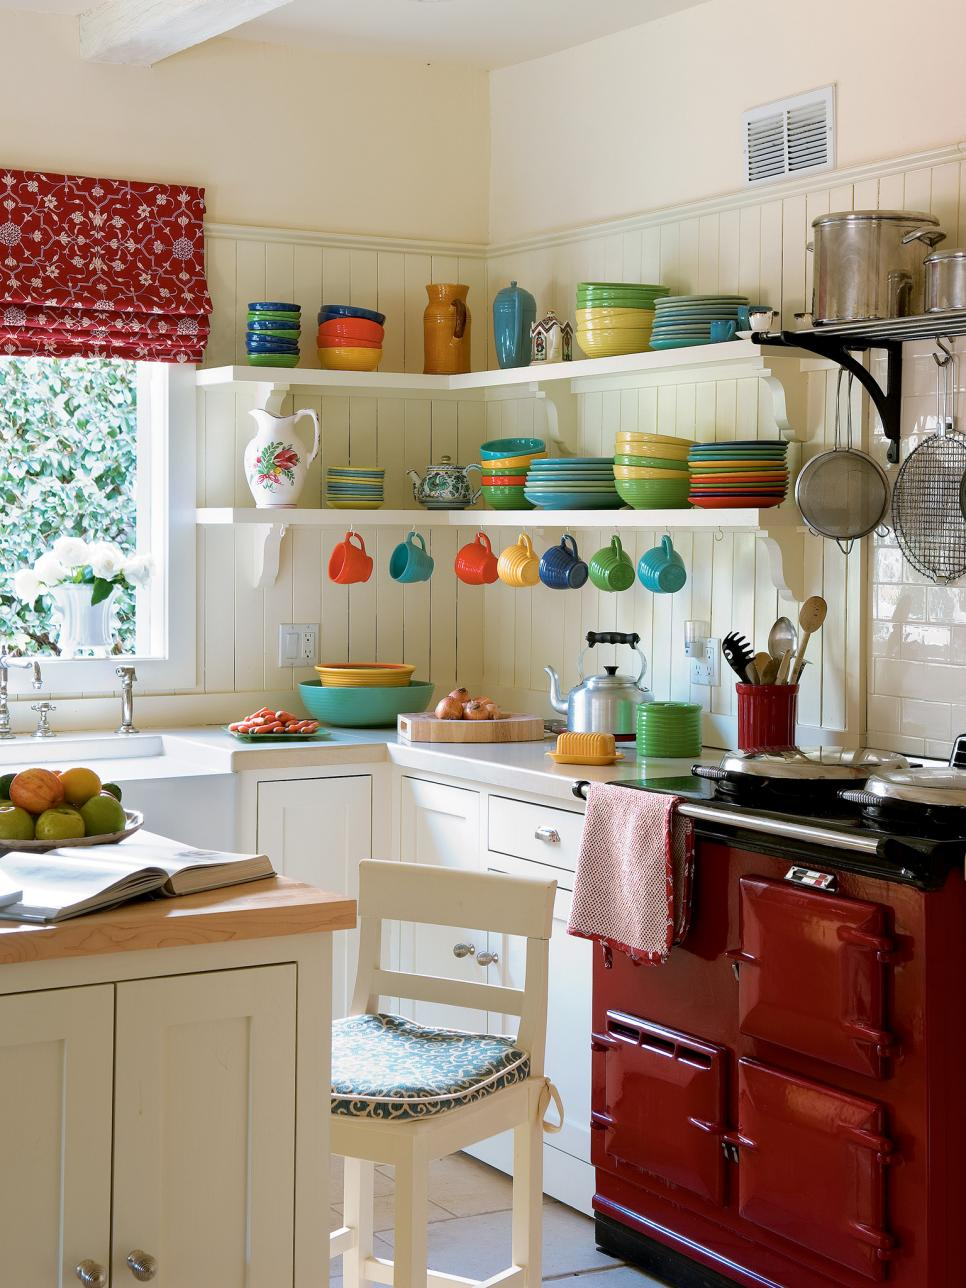 pictures of small kitchen design ideas from hgtv hgtv - Kitchen Ideas Small